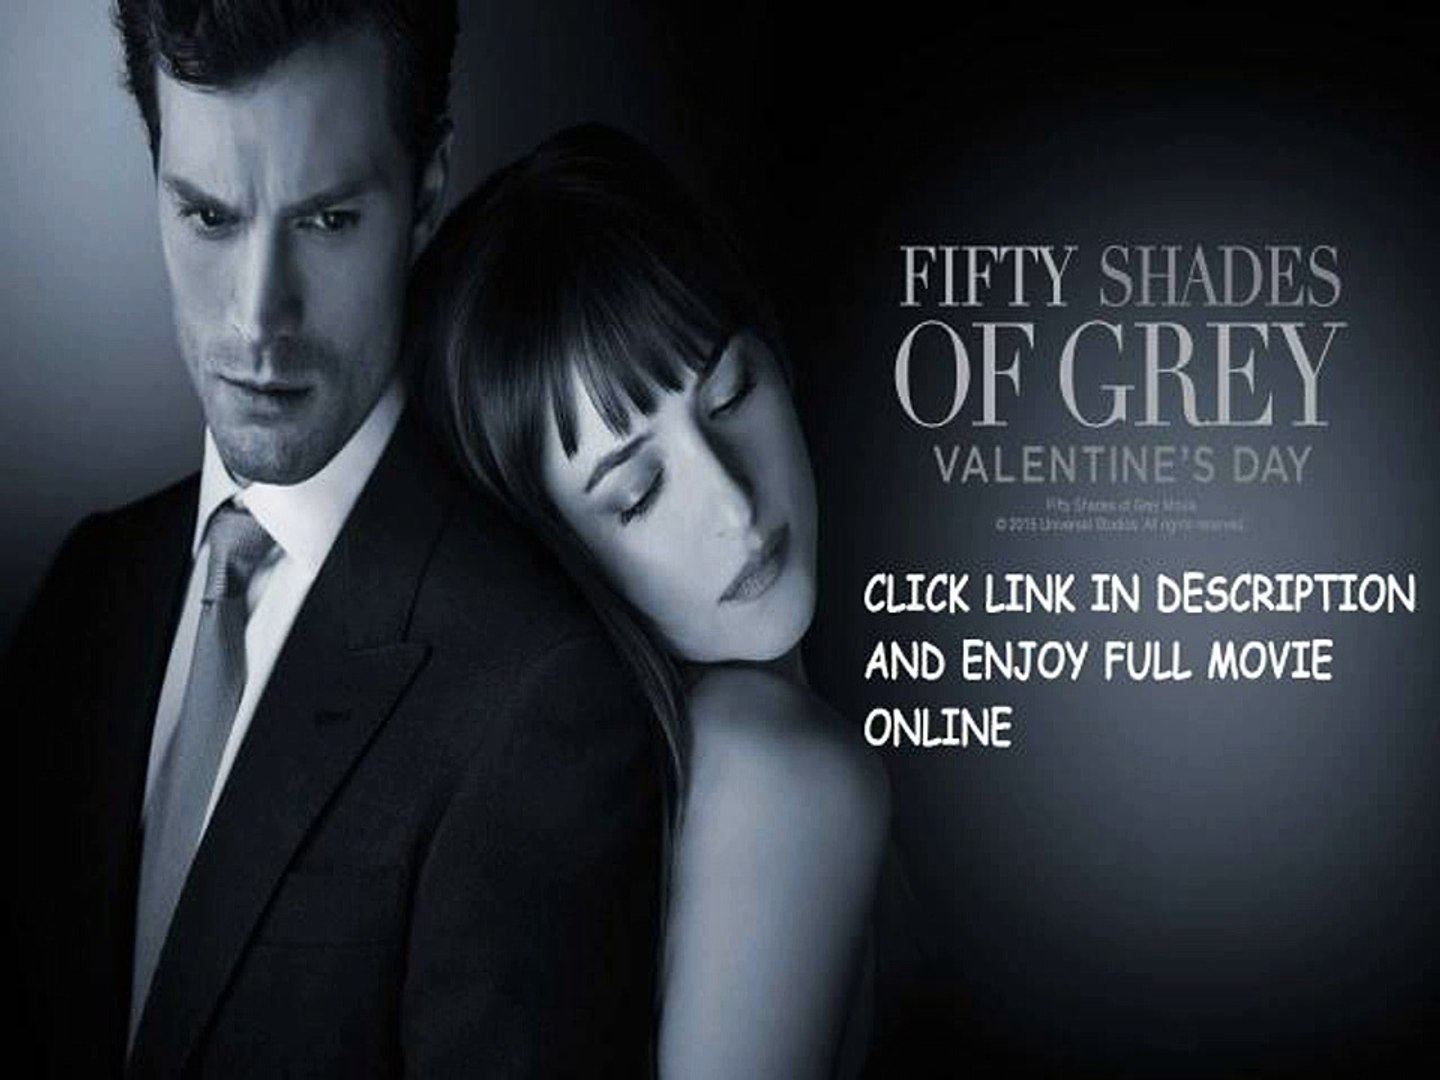 50 shades of grey movie online free watch dailymotion